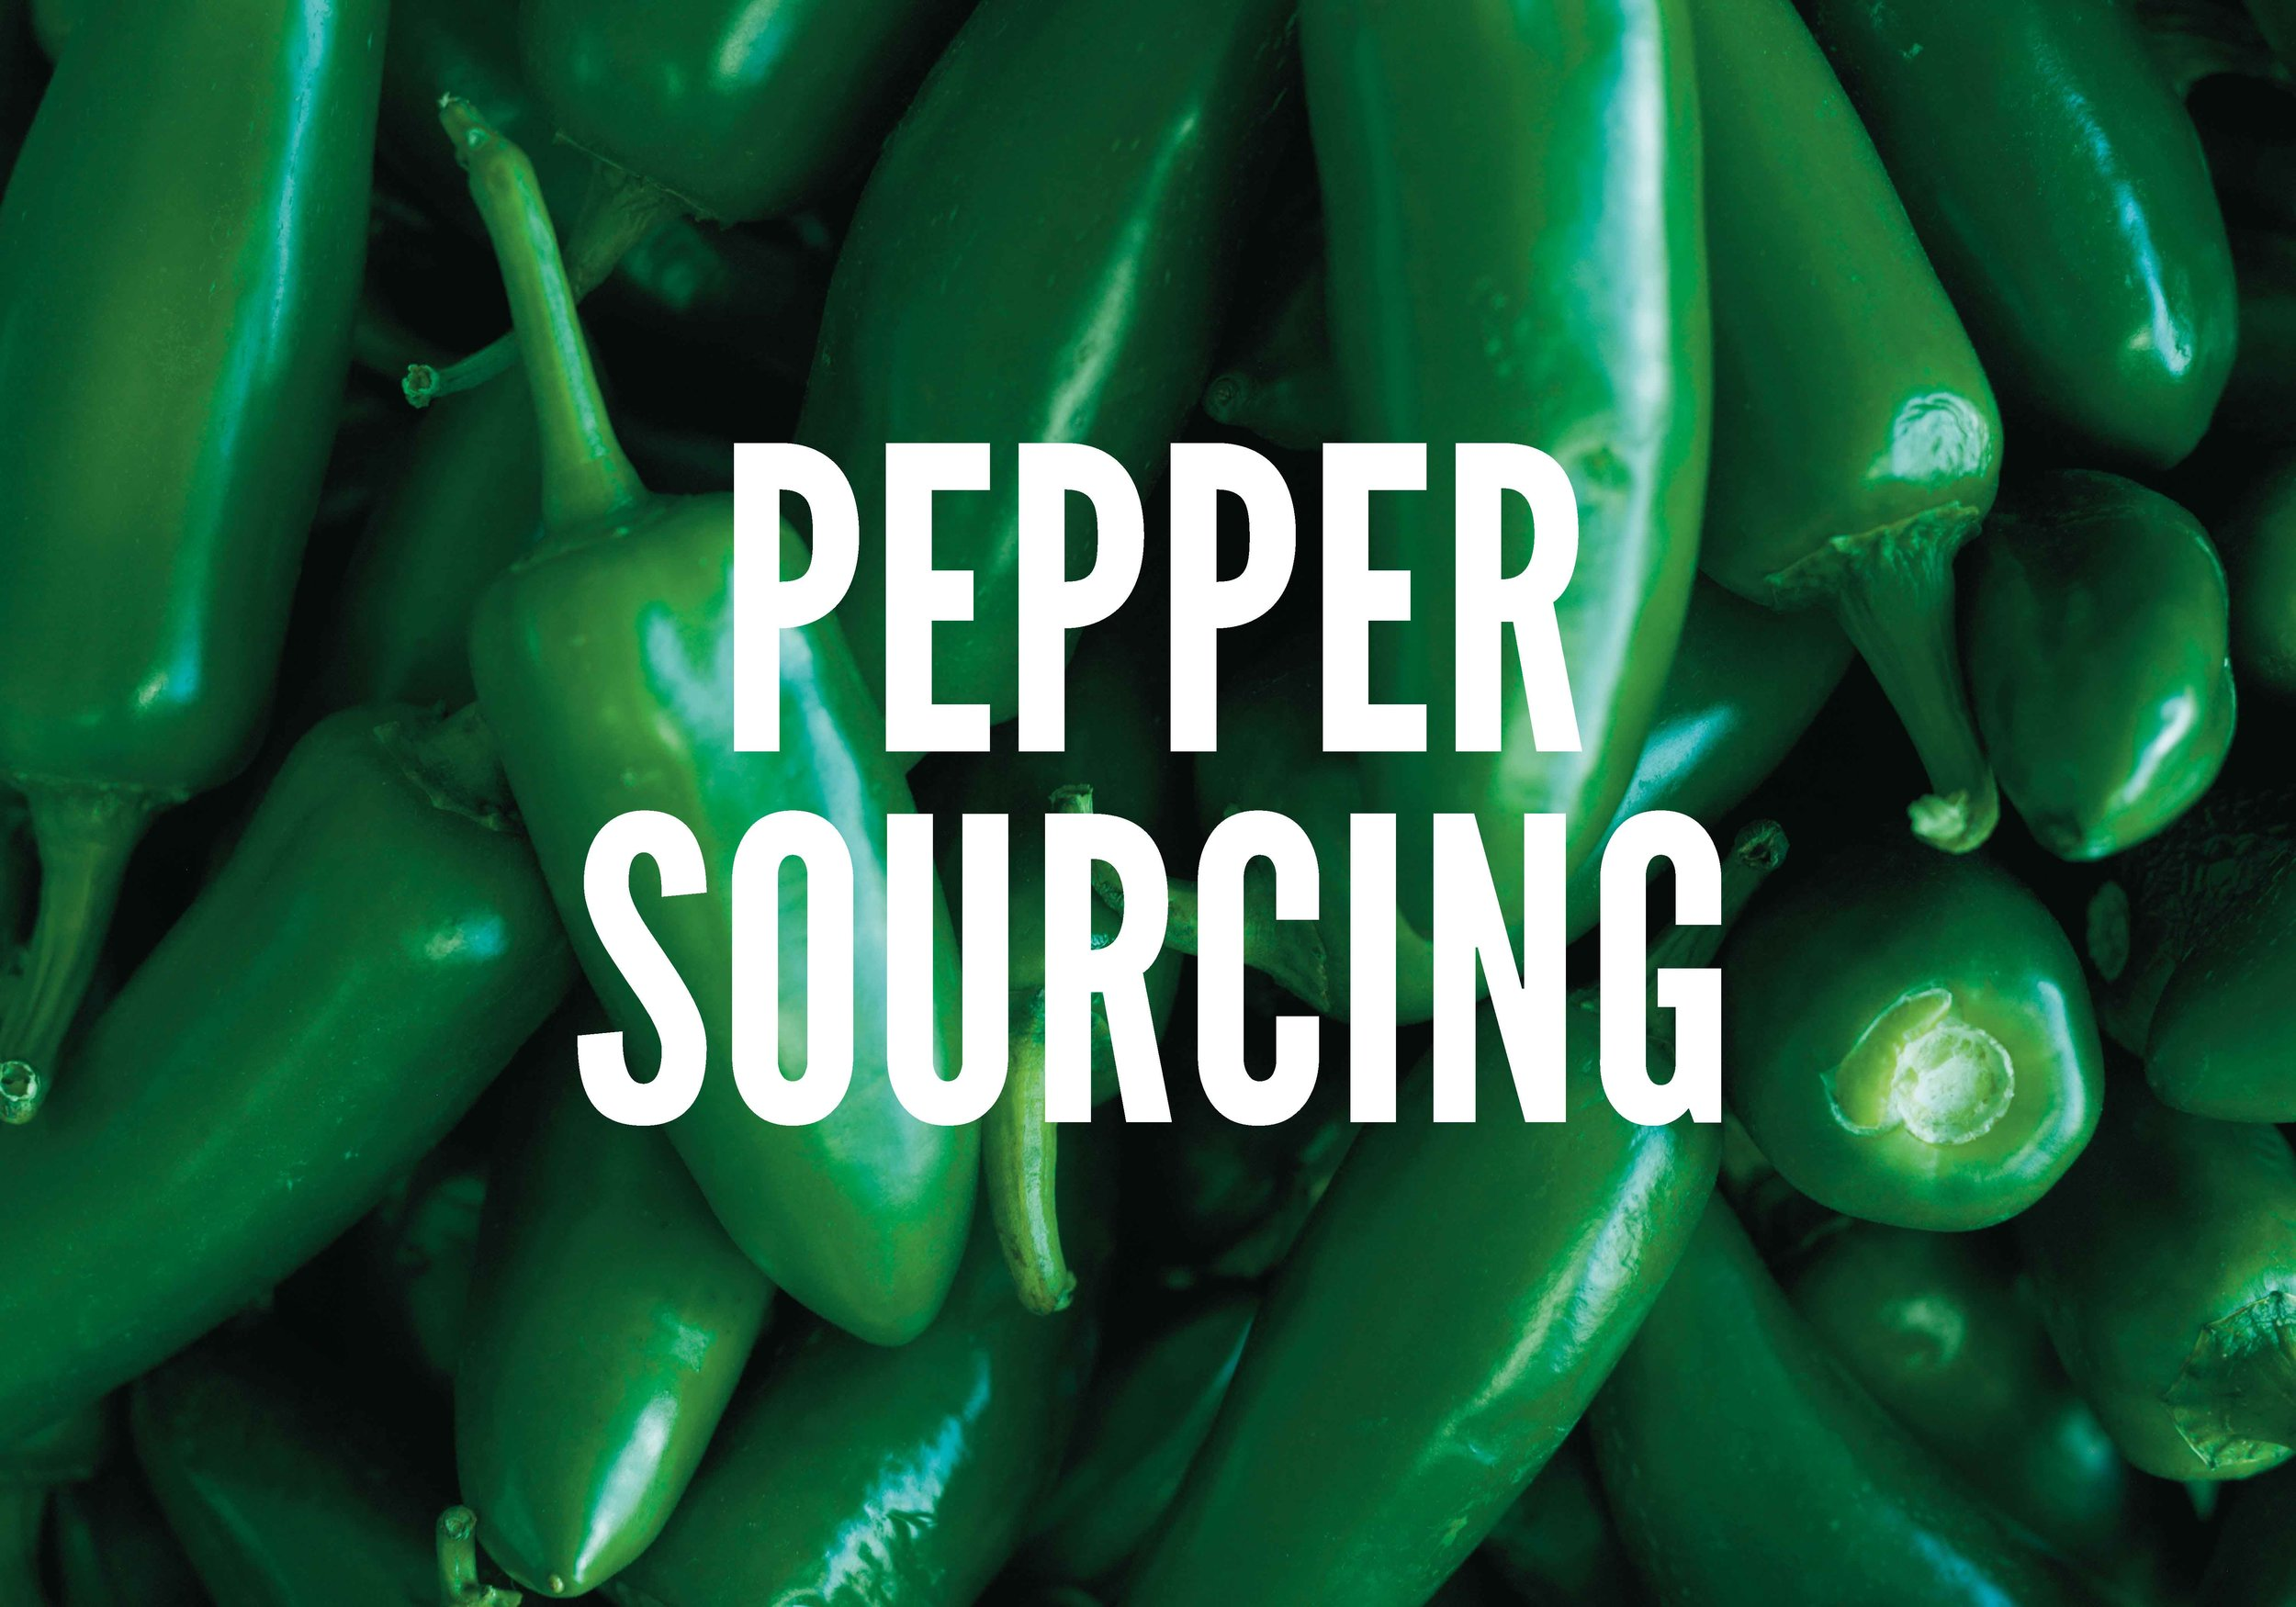 COVER. Pepper Sourcing.jpg